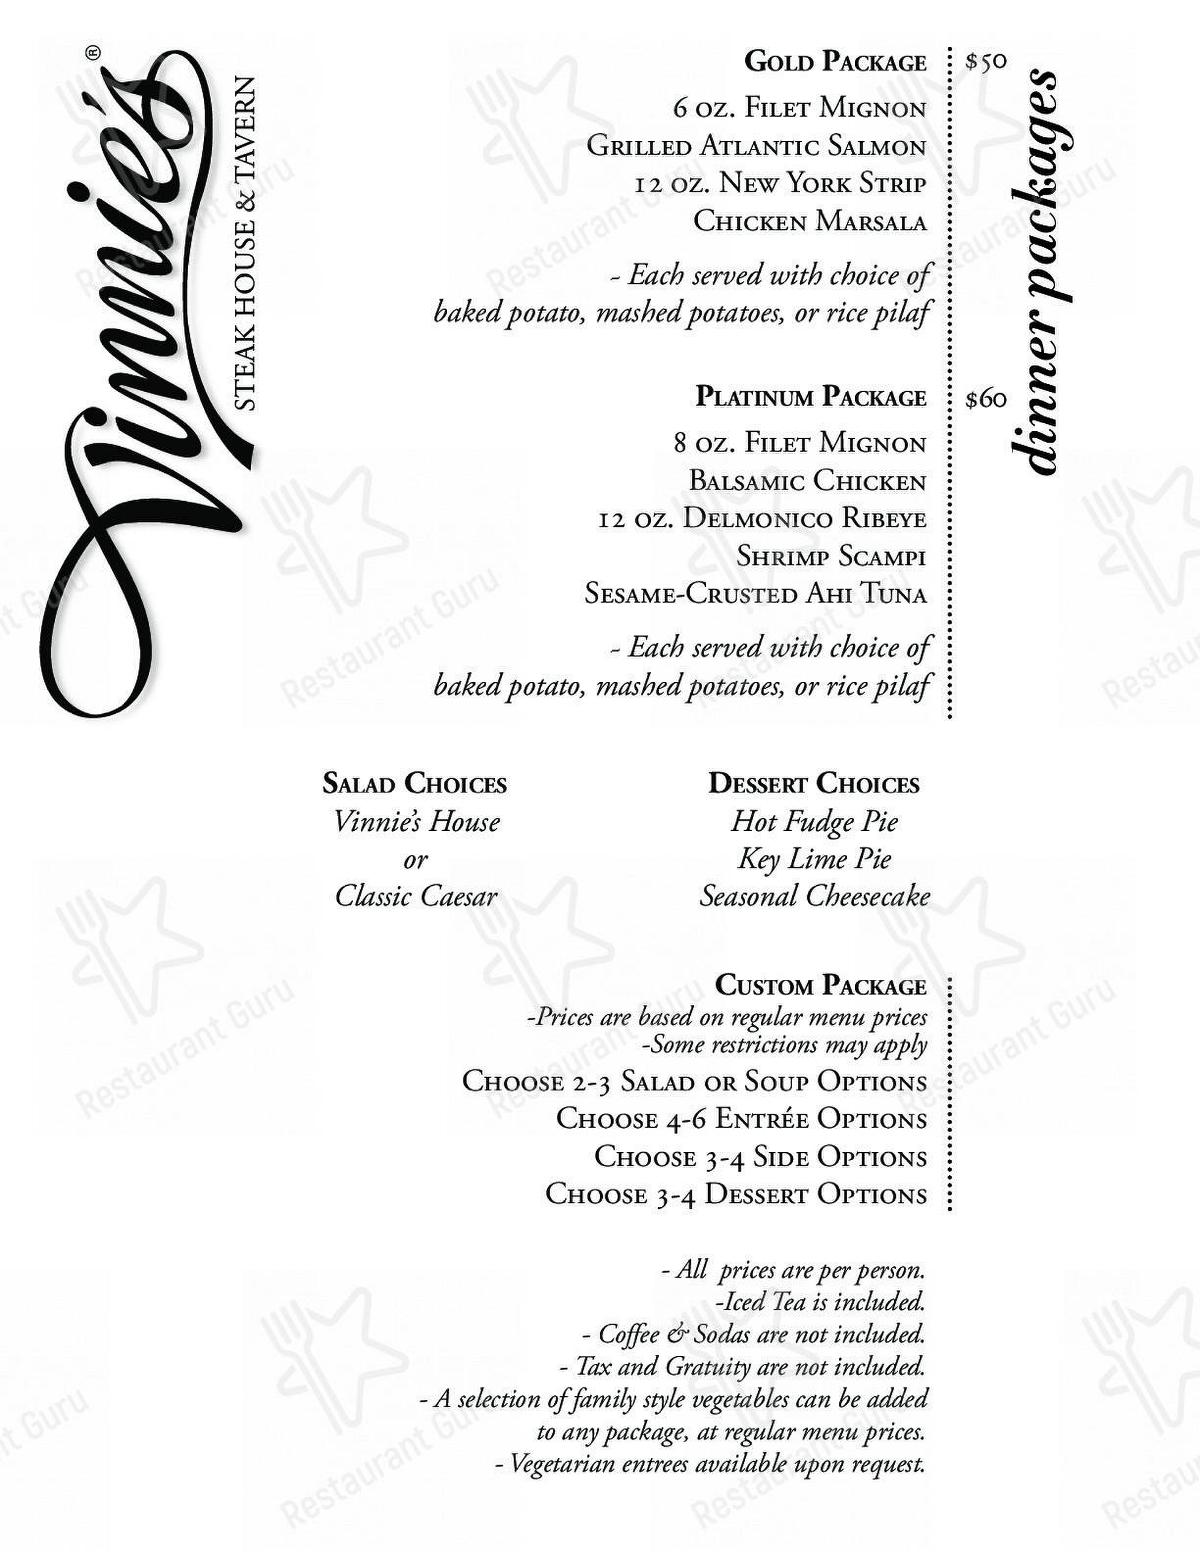 Vinnie's Steak House & Tavern in Raleigh - Limited menu